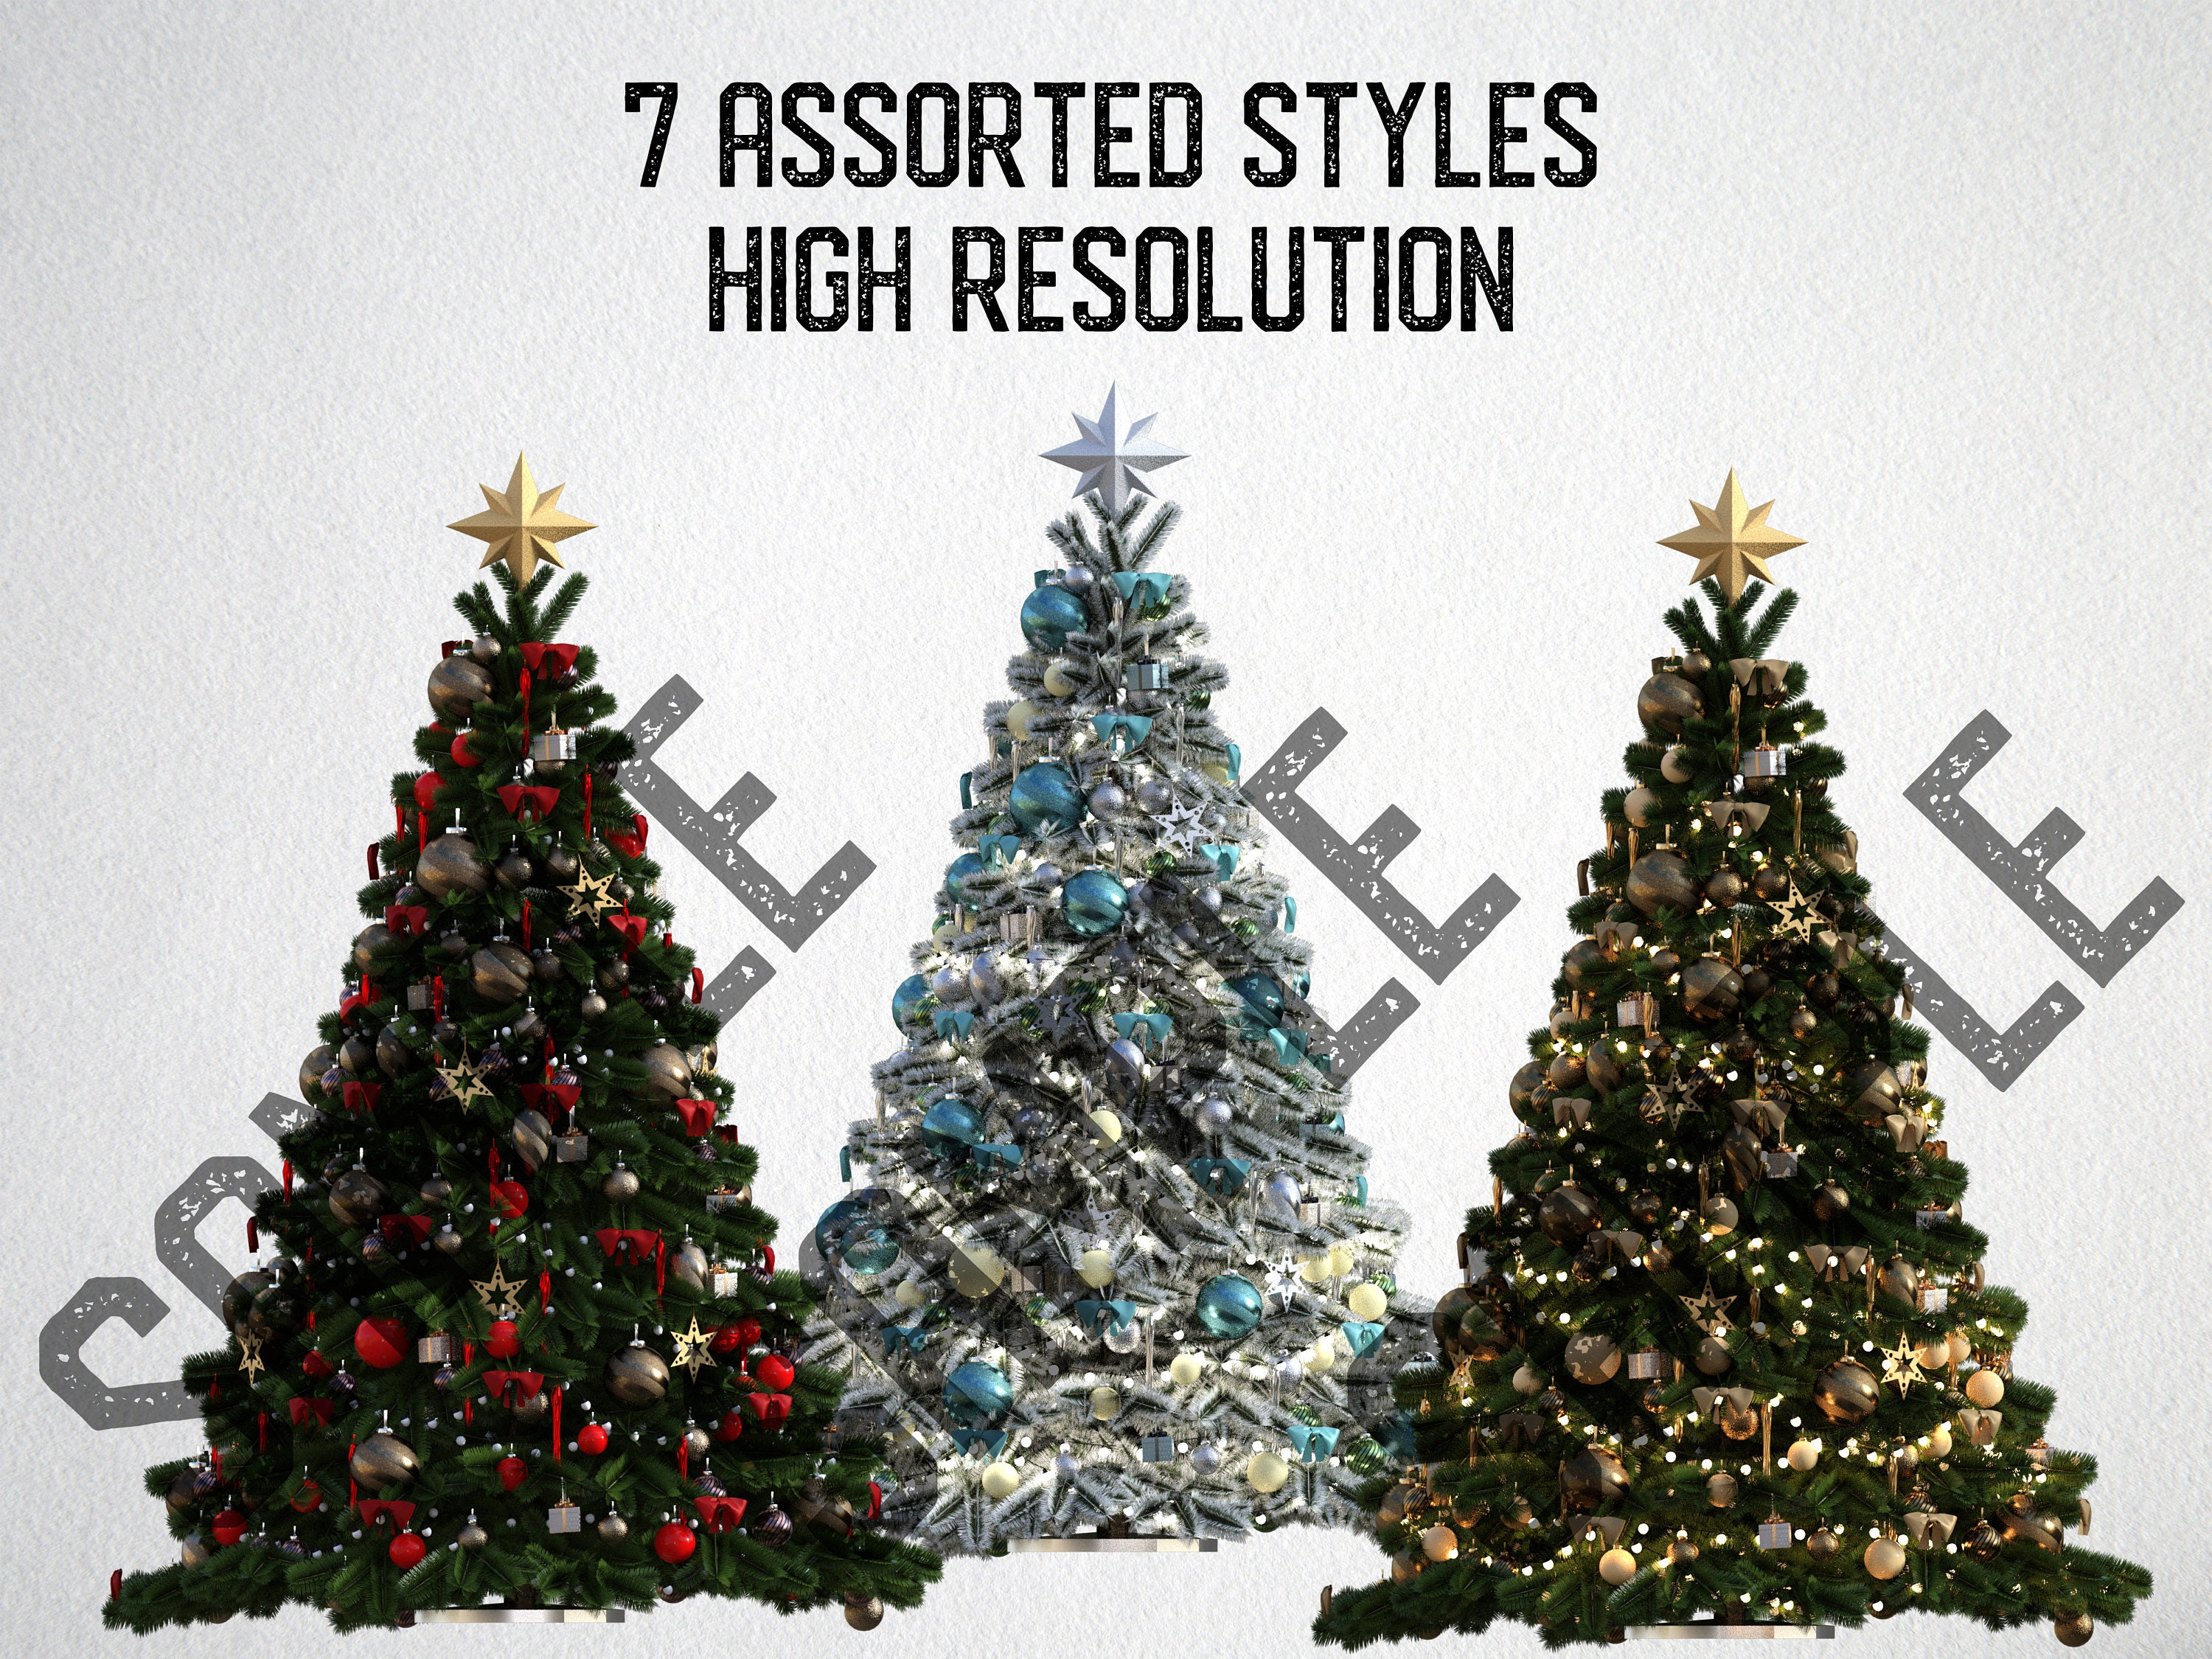 14 christmas tree overlays plus bonus presents, separate png files